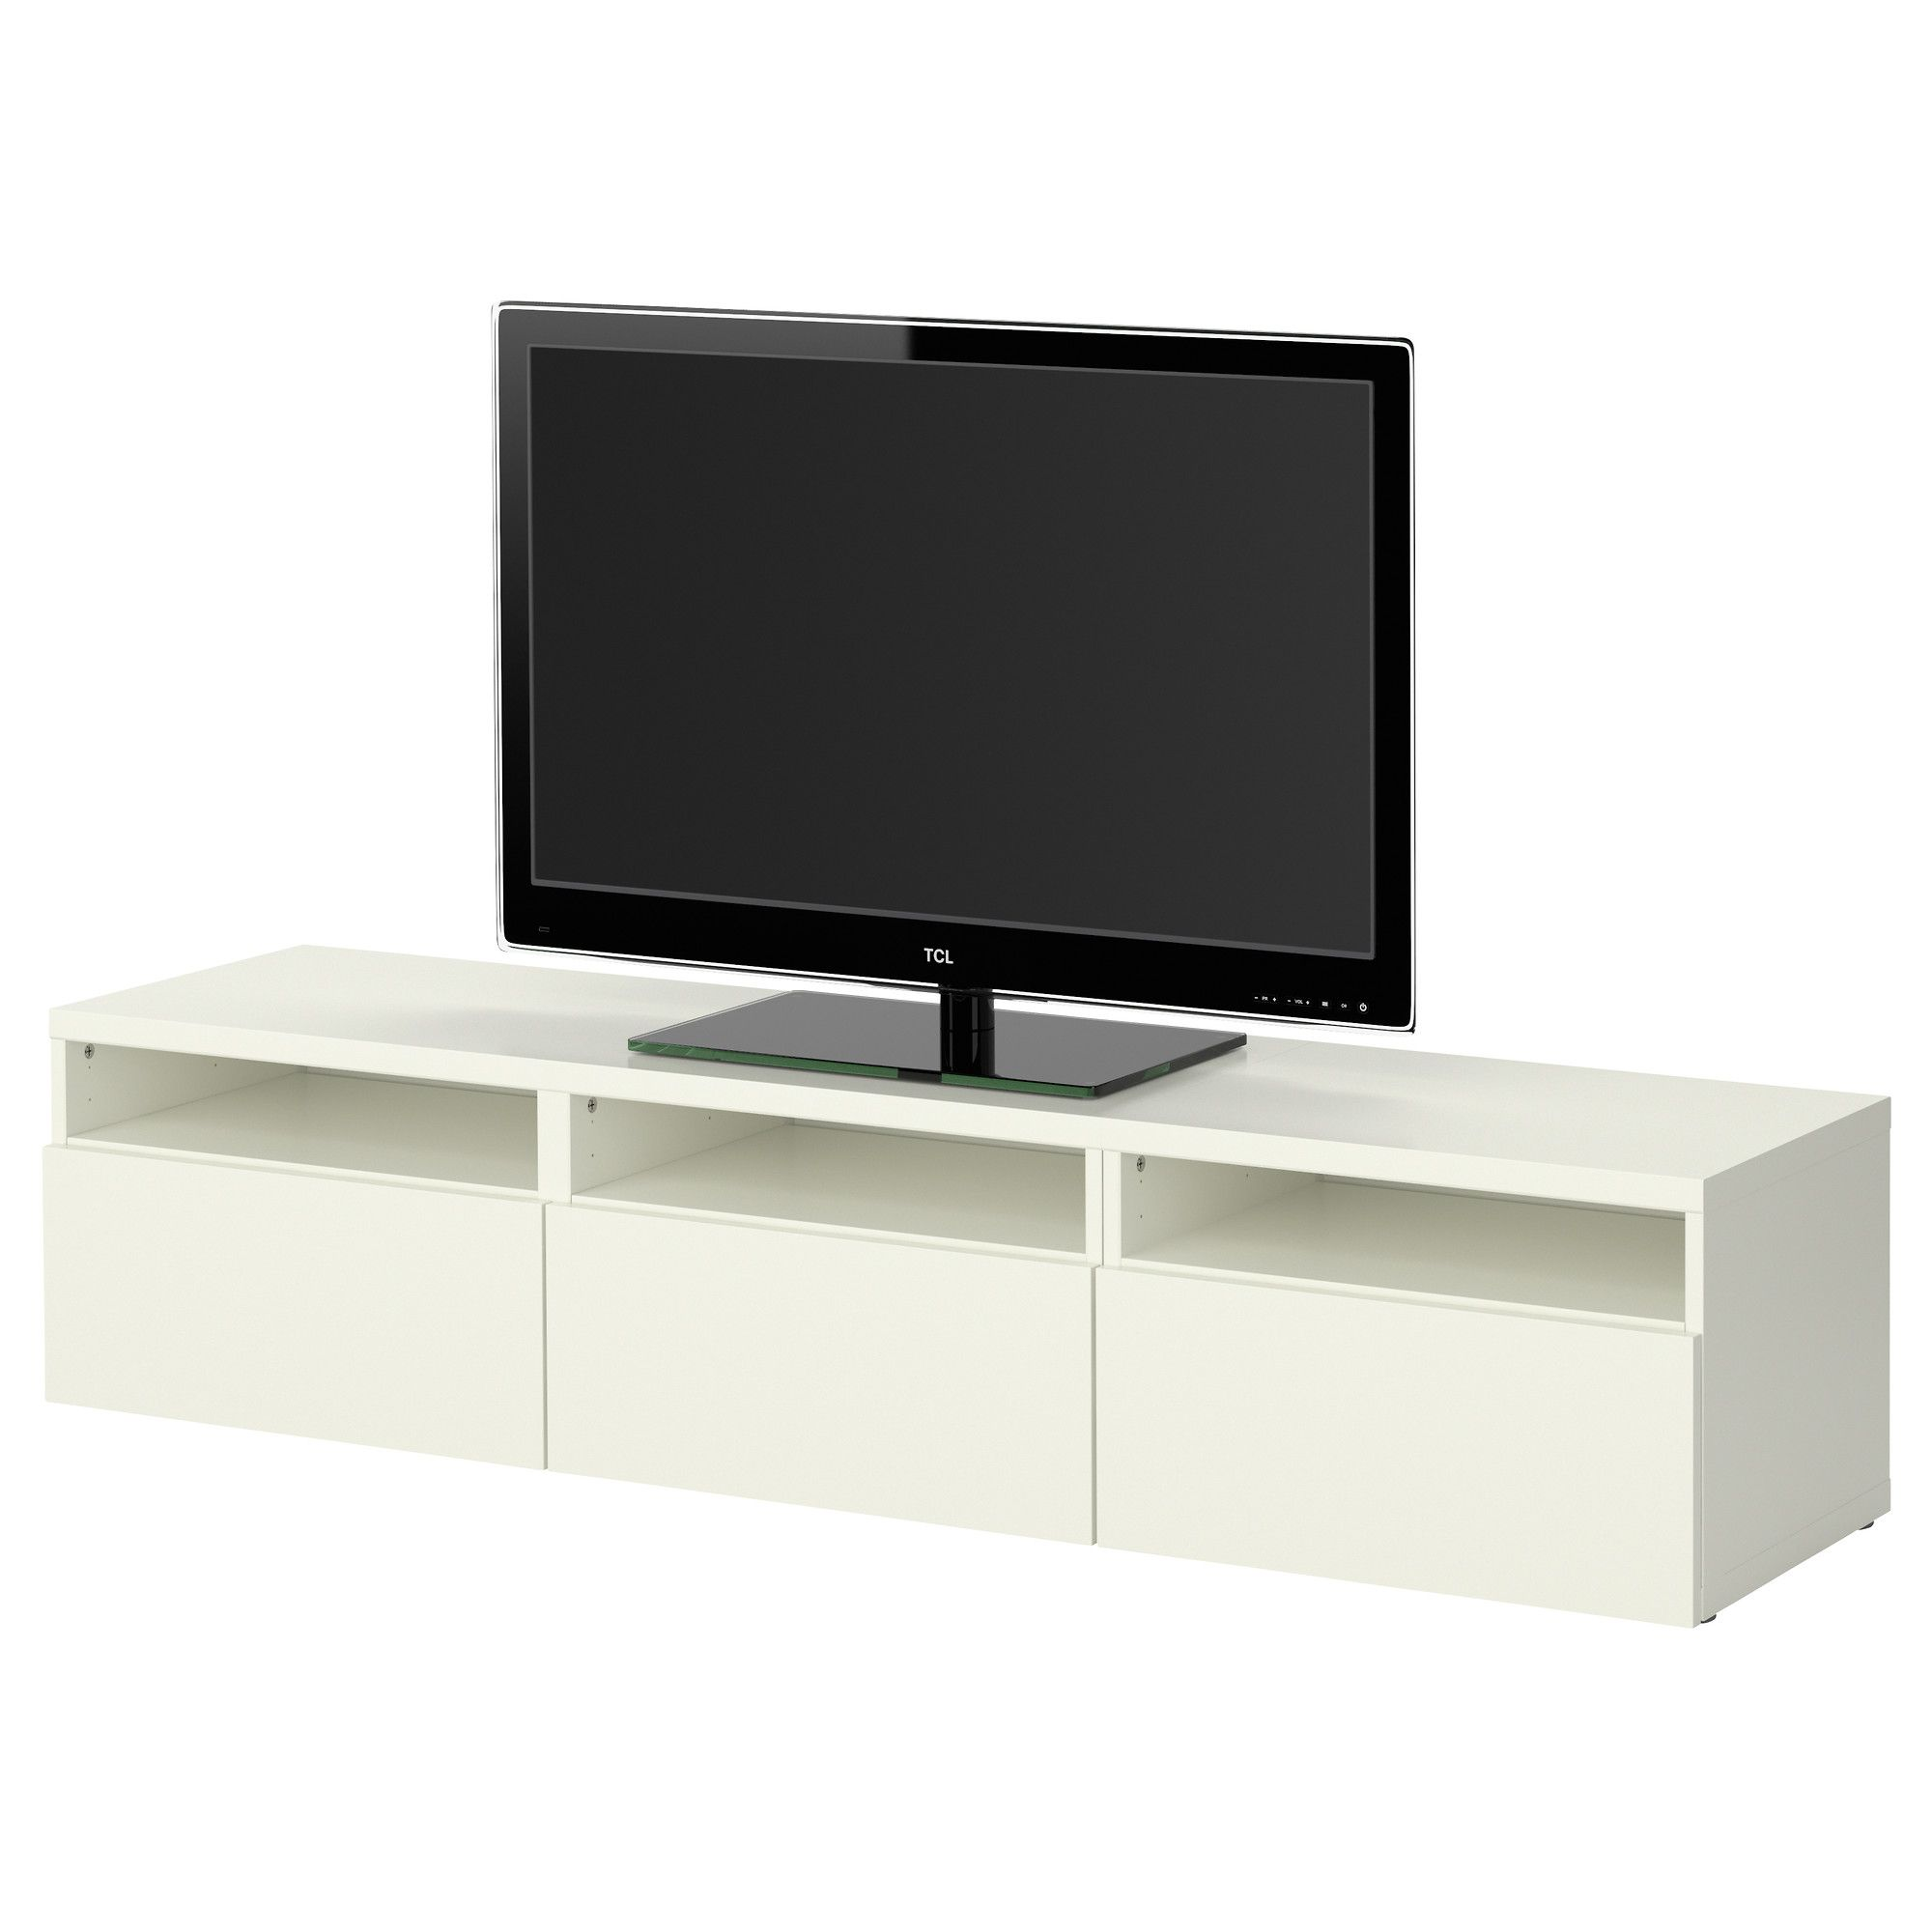 Tv möbel weiss ikea  BESTÅ TV-Möbel, Kombination - IKEA | IKEA Ideas | Pinterest | TV ...